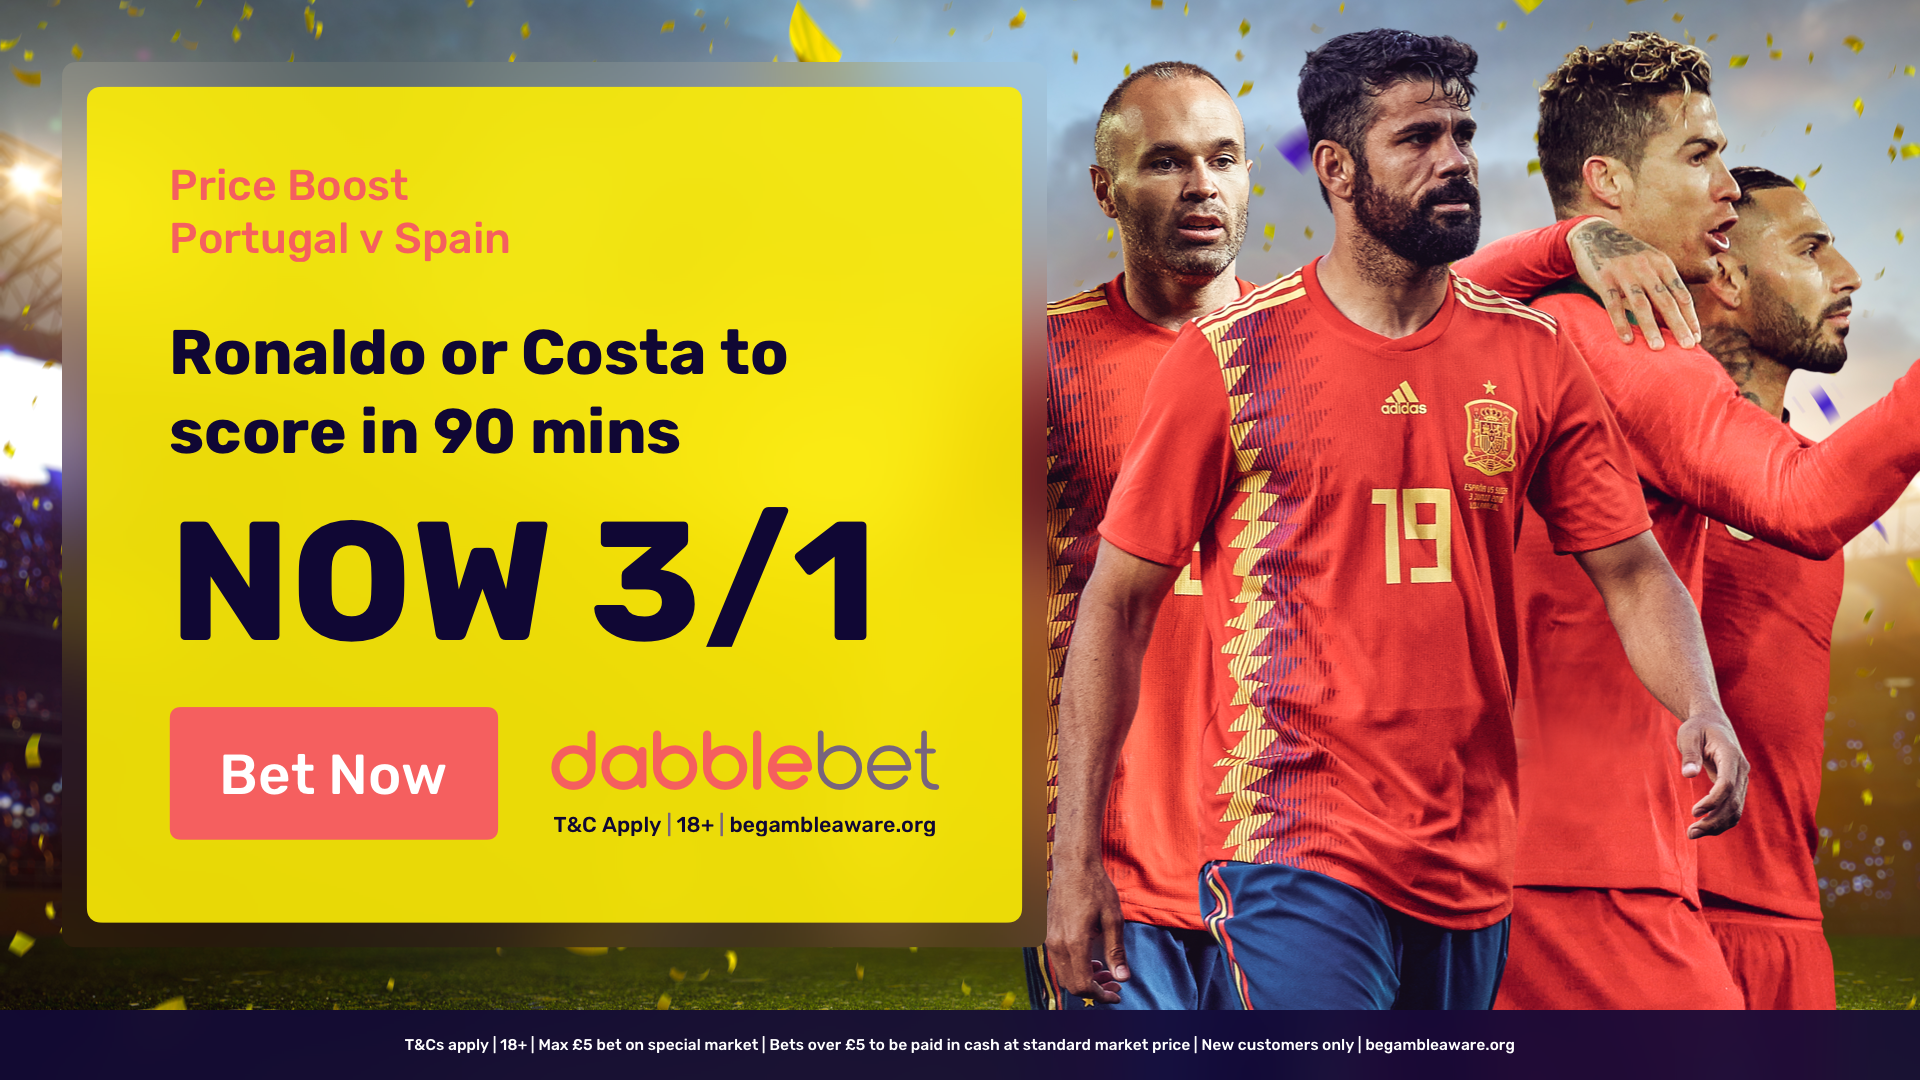 dabblebet Ronaldo Costa offer in article